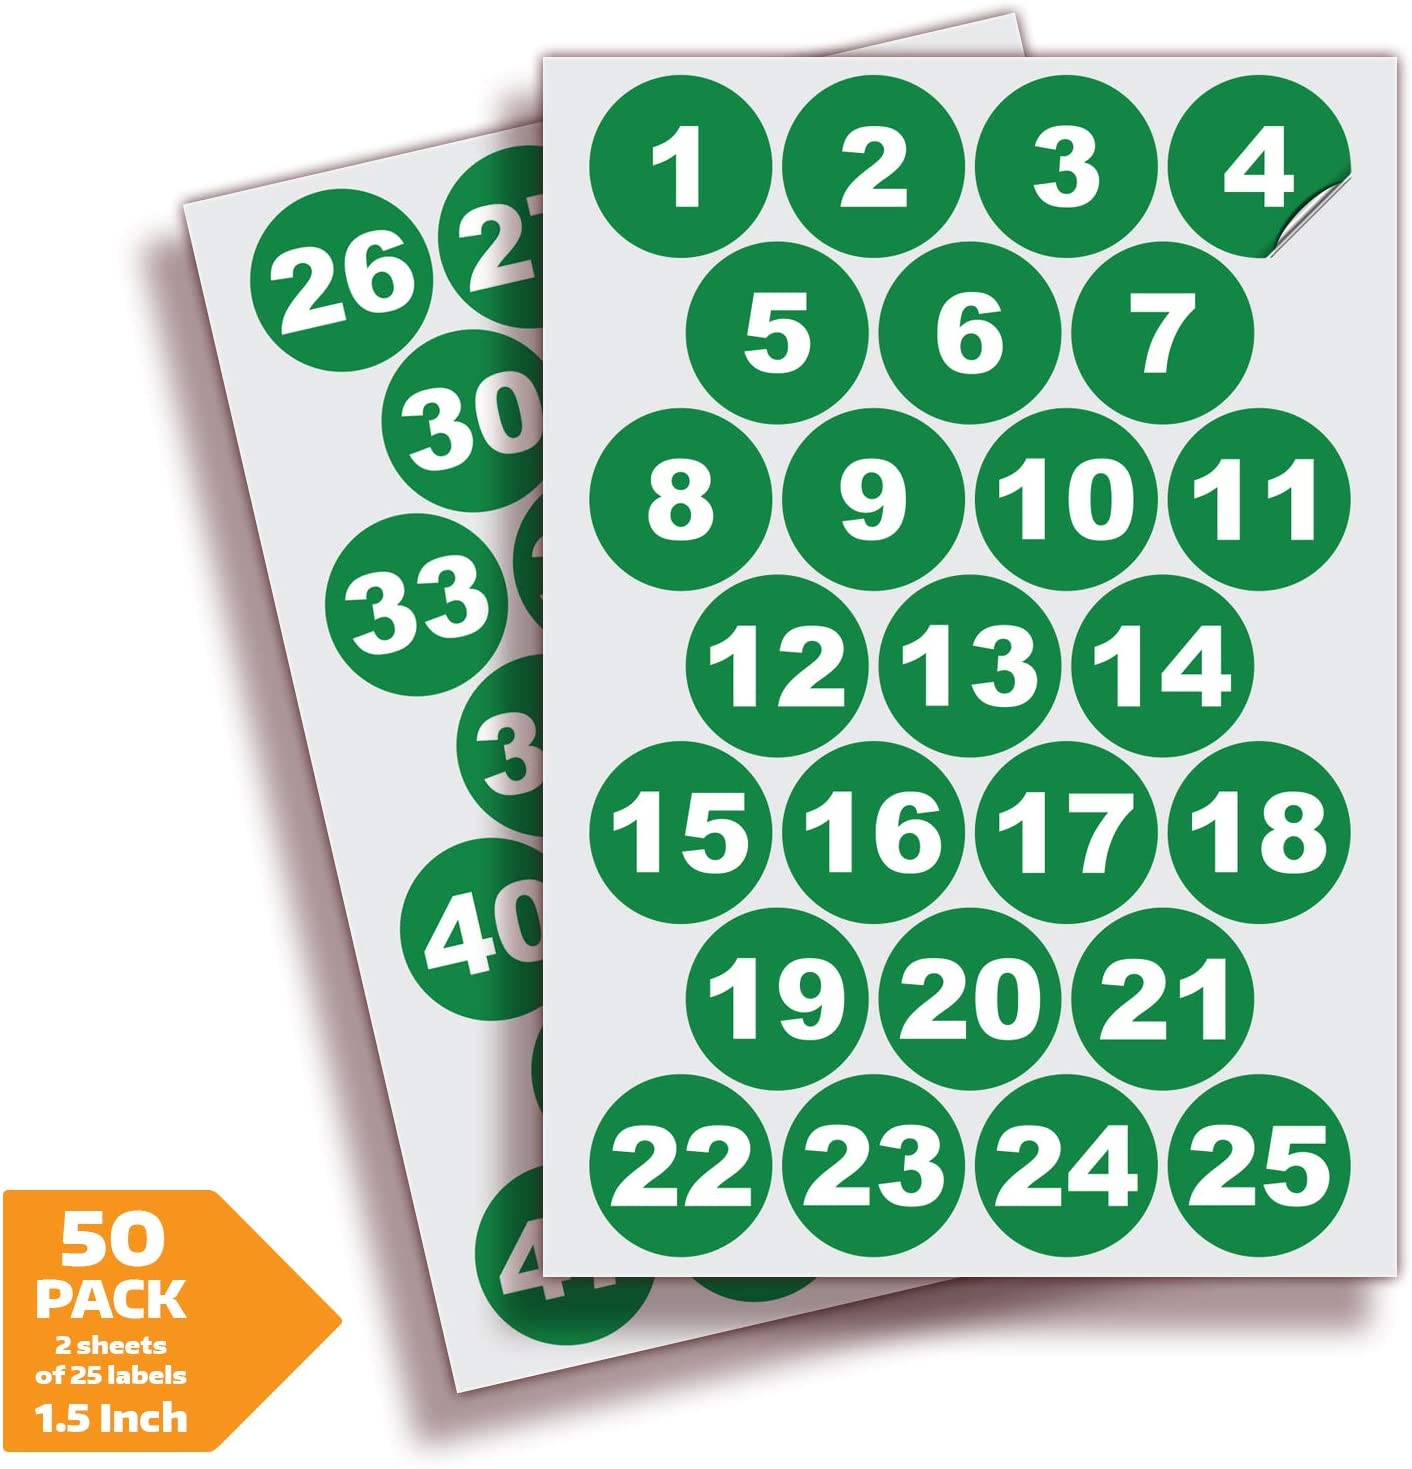 Green Vinyl Consecutive Number Stickers - 1 to 50, 1.5 inch Self-Adhesive - Premium Decal for Indoor & Outdoor, Ideal for Inventory, Storage, Organizing, Great on Boxes, Bins, Toolbox, Lockers & More